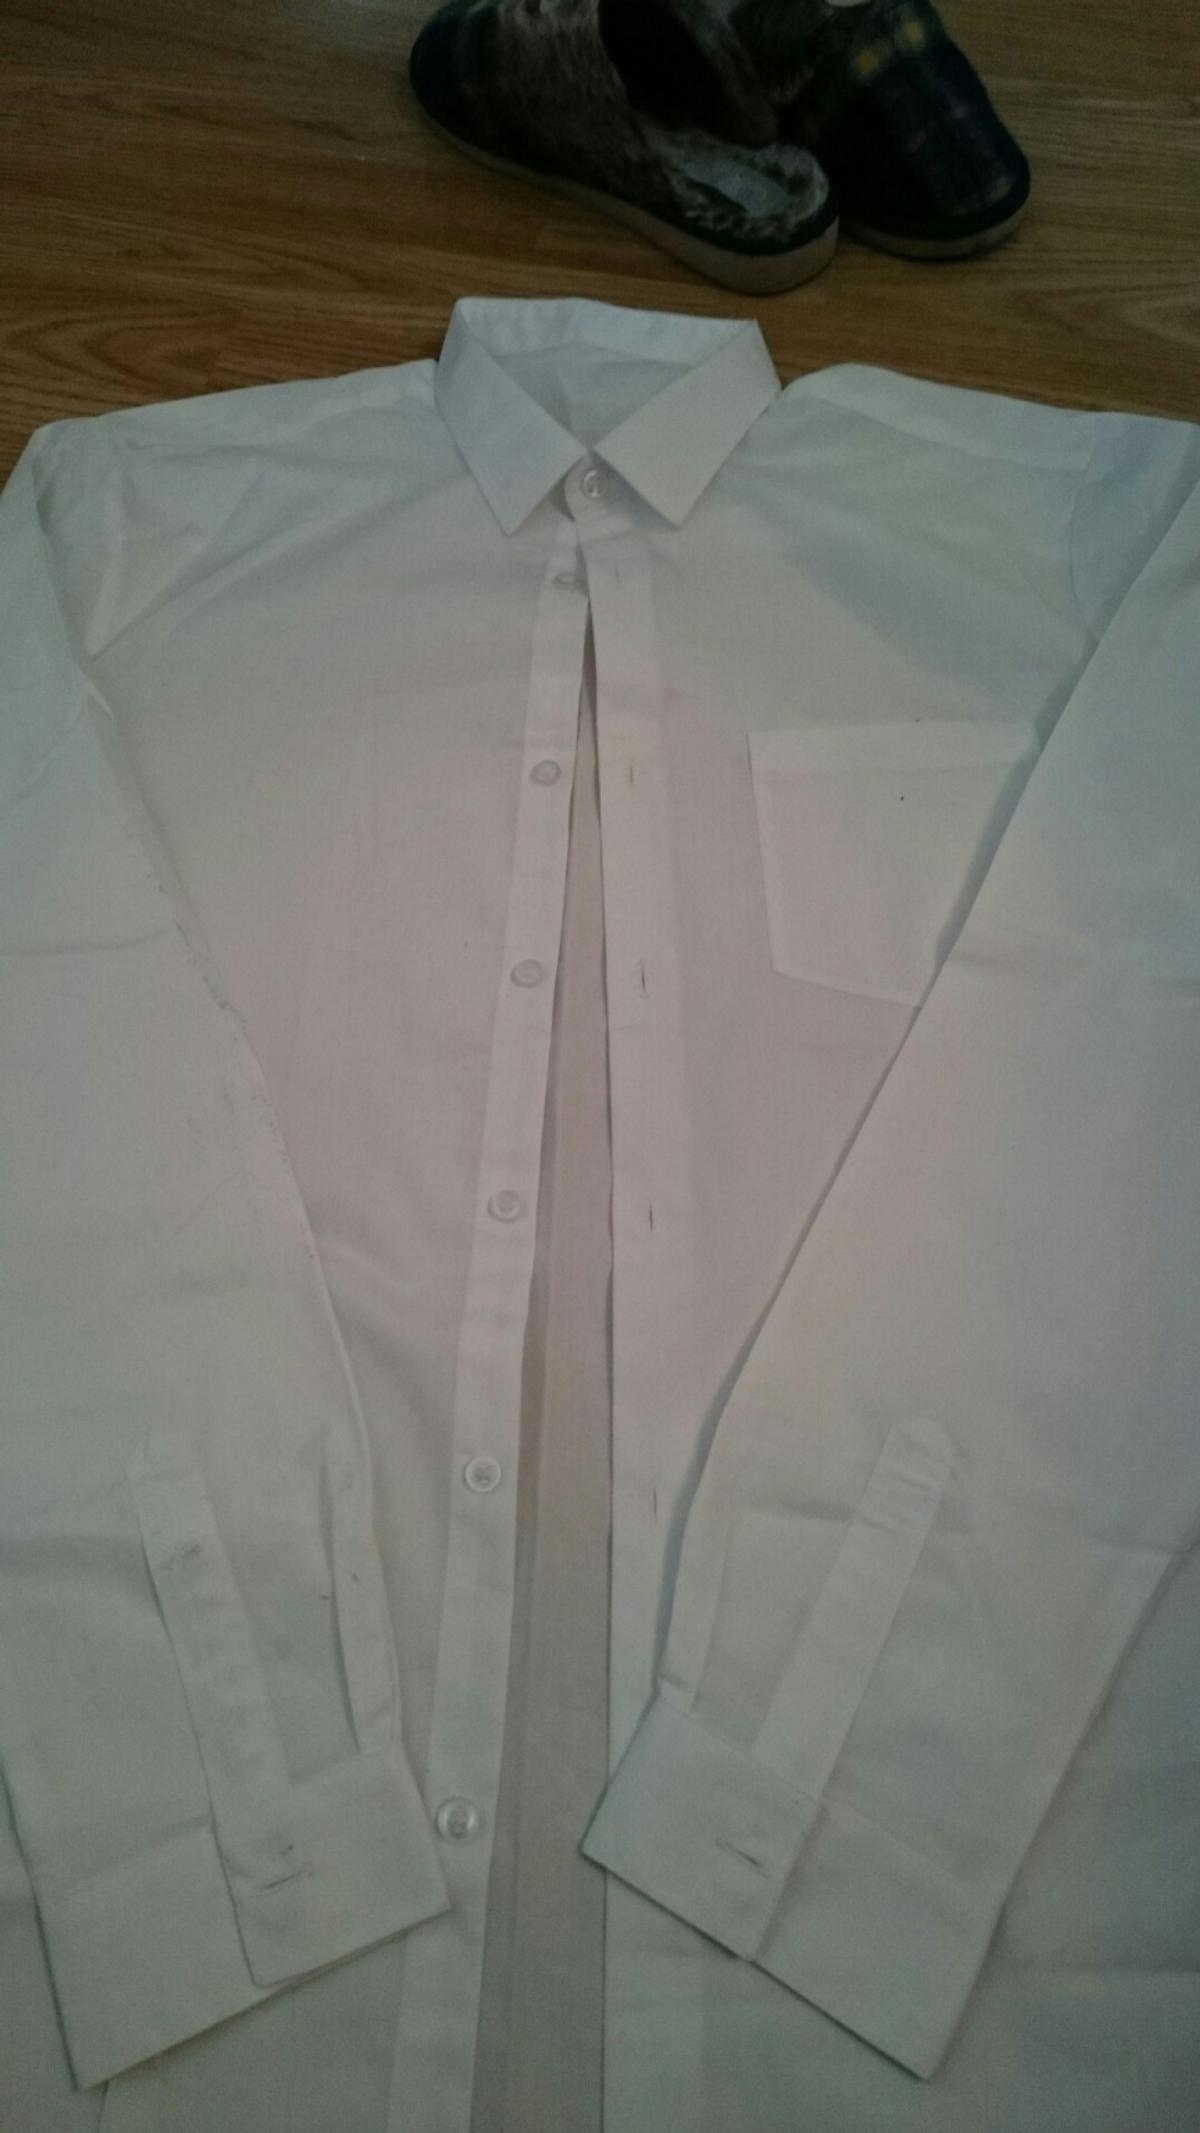 white long sleeve shirt, size 40 inch chest 50p collection please